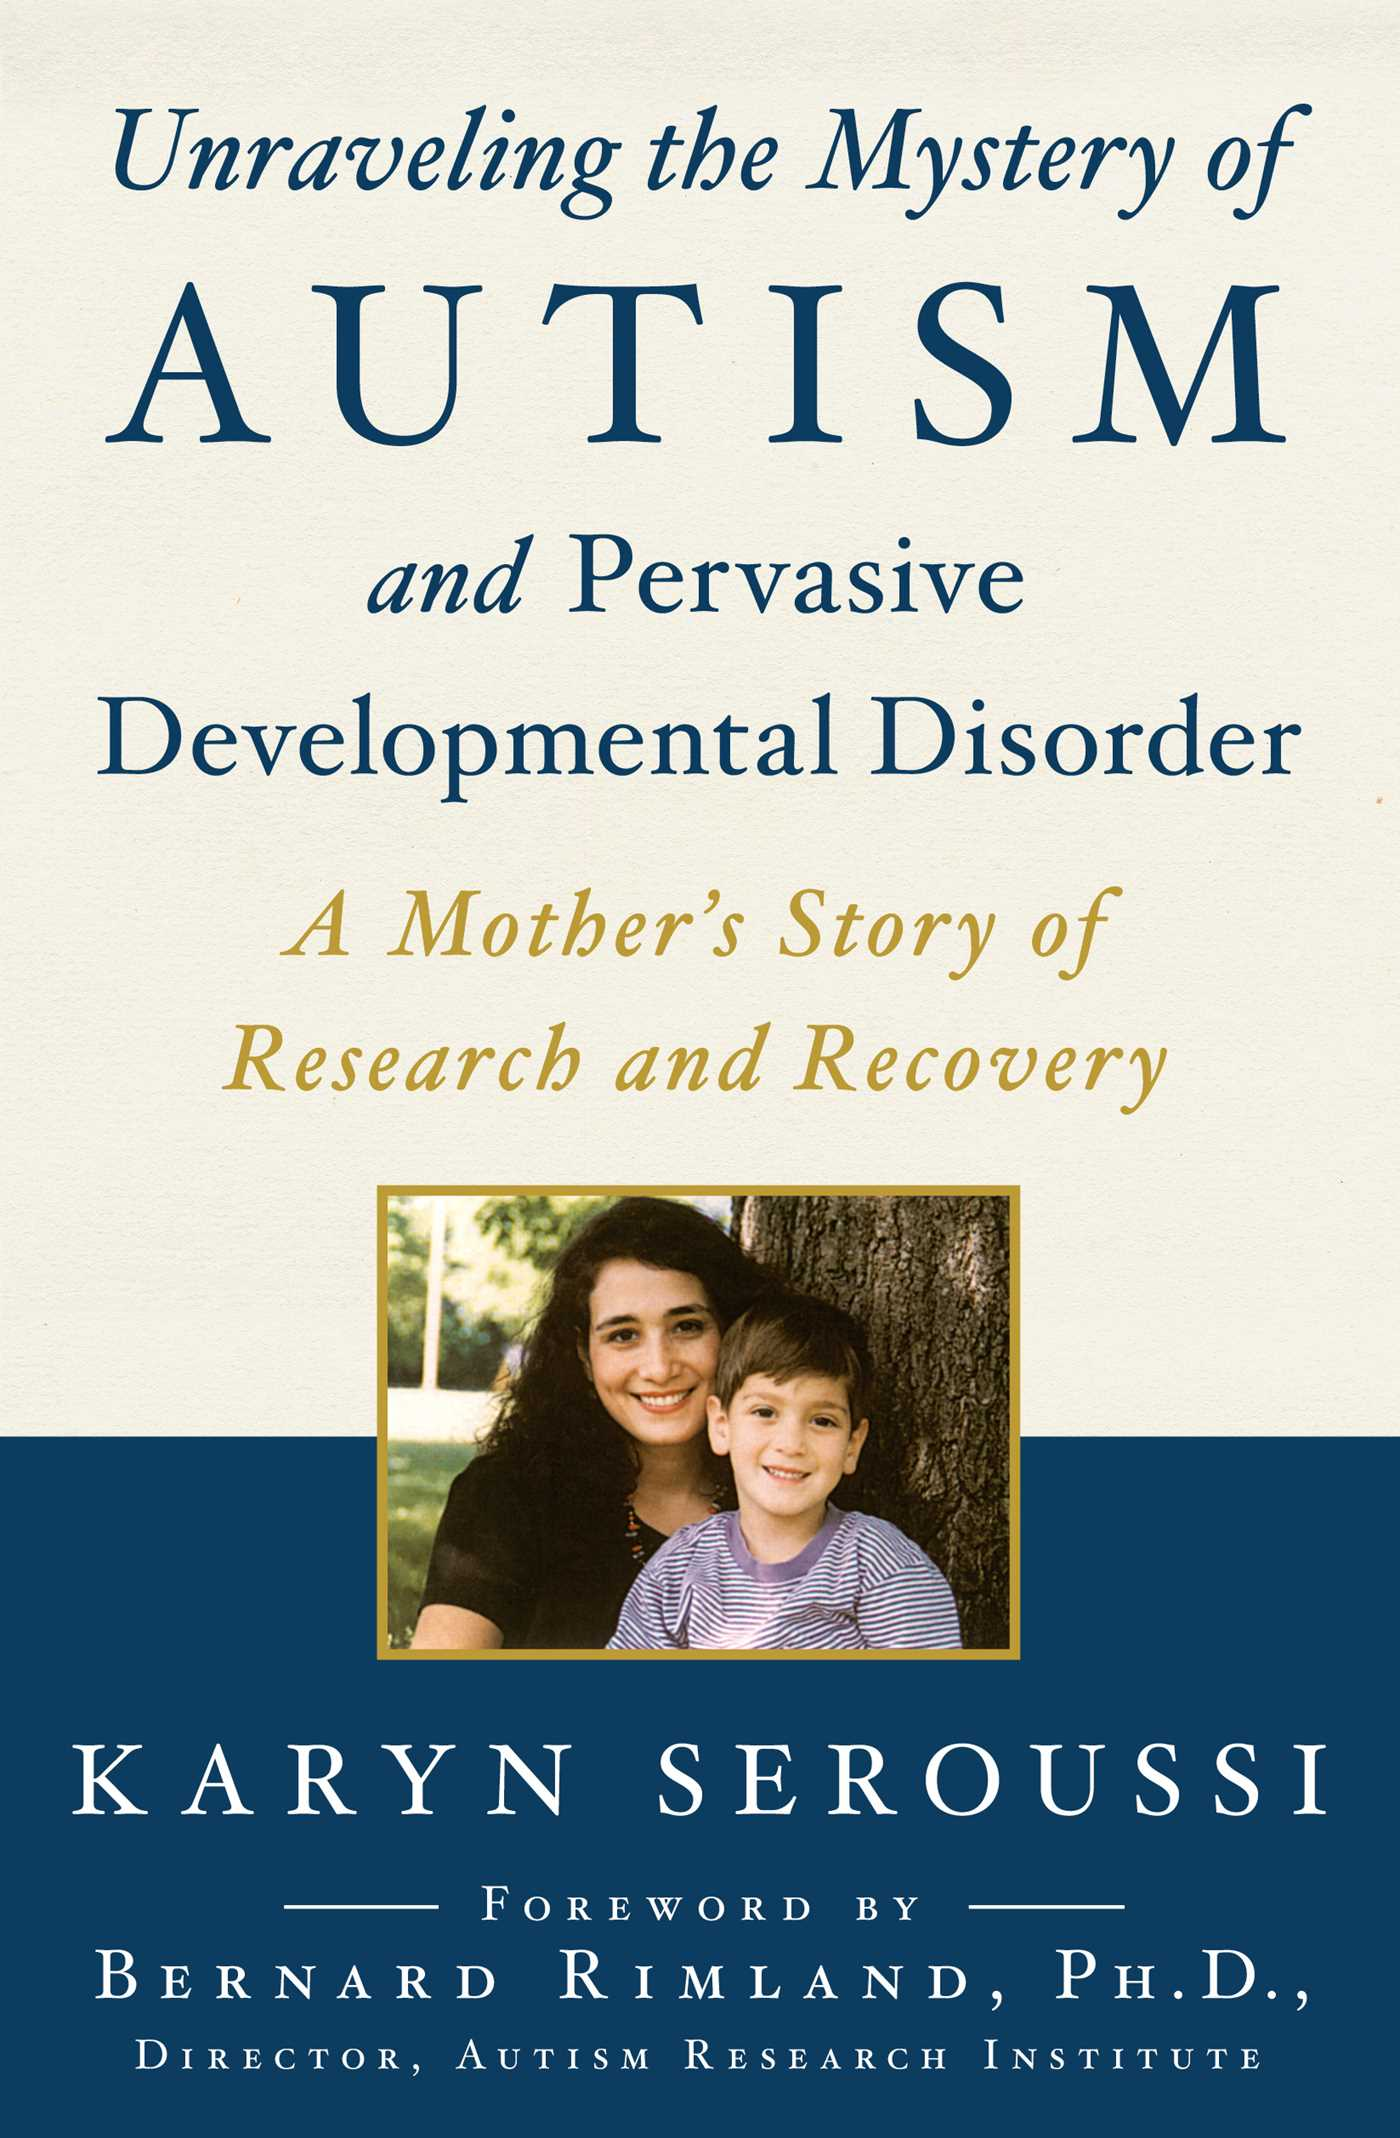 Unraveling the Mystery of Autism and Pervasive Developmental